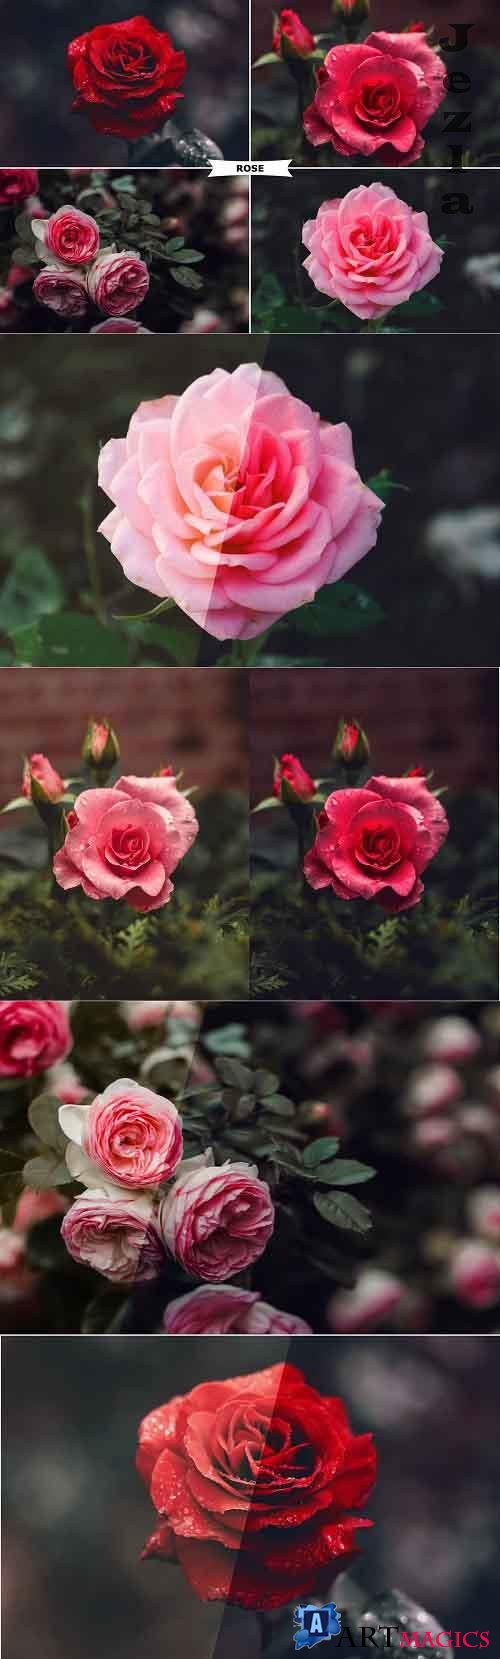 Rose Photoshop Action 4974092